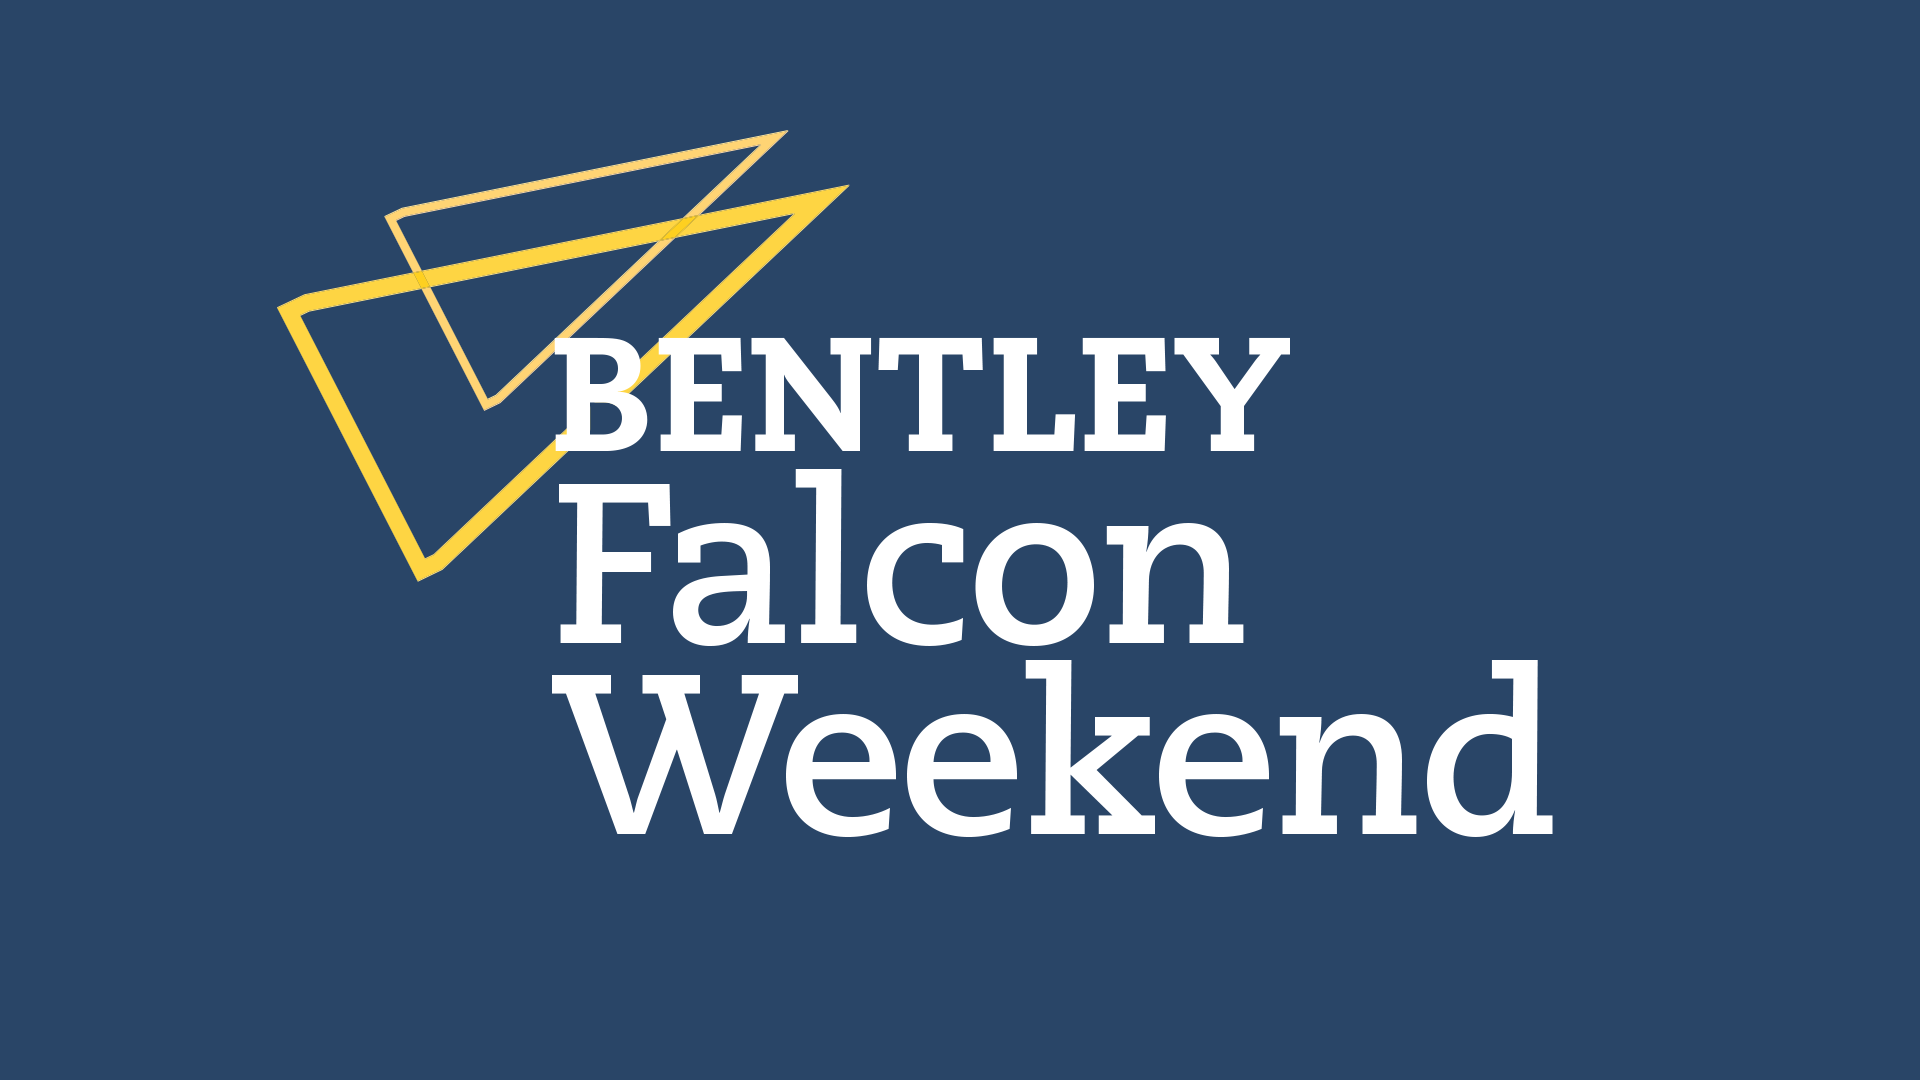 Bentley Falcon Weekend logo